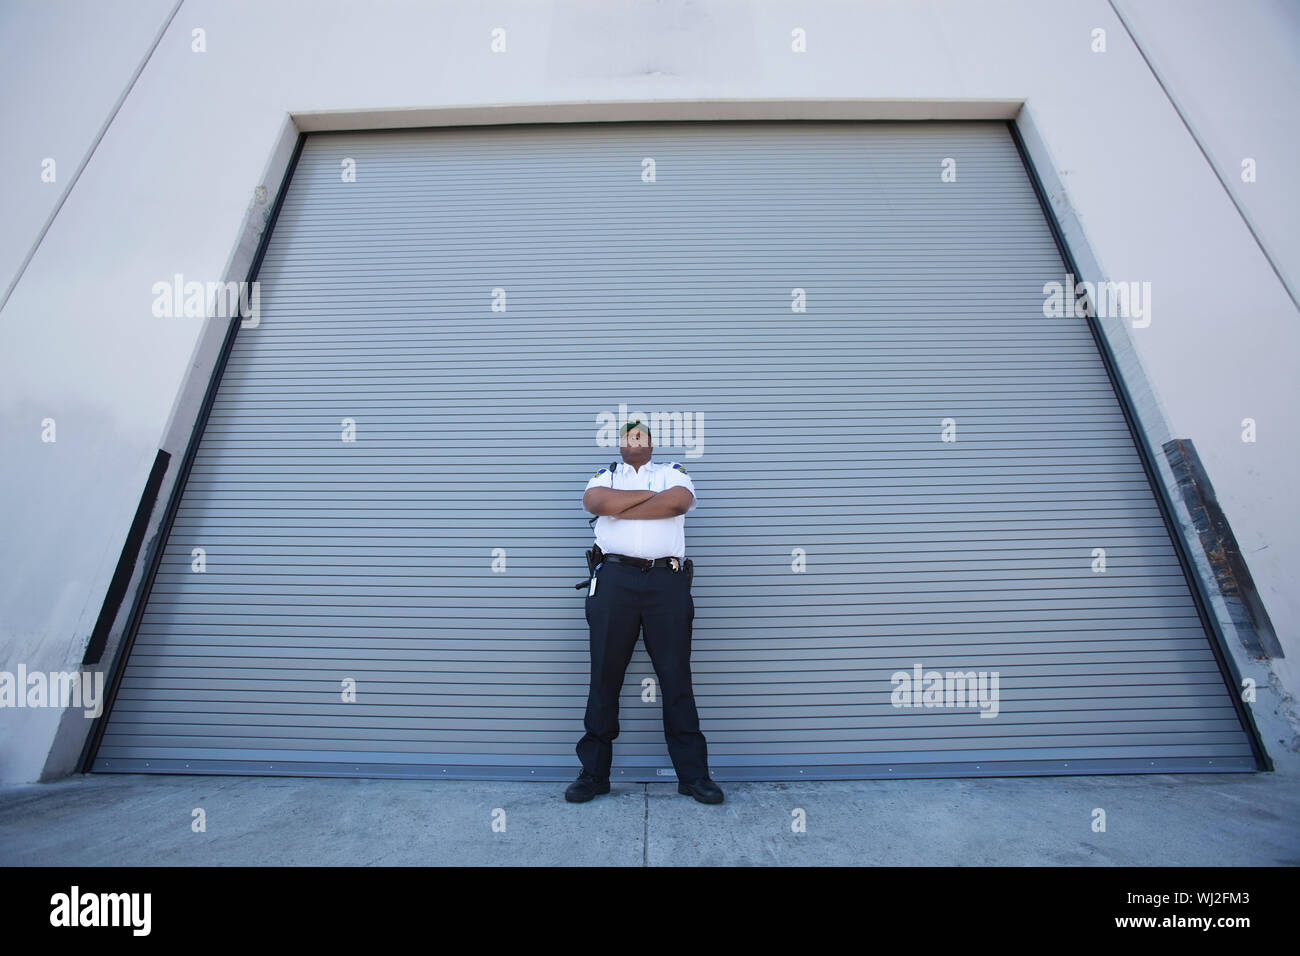 All Guard Shutters low angle view of a young security guard standing with arms